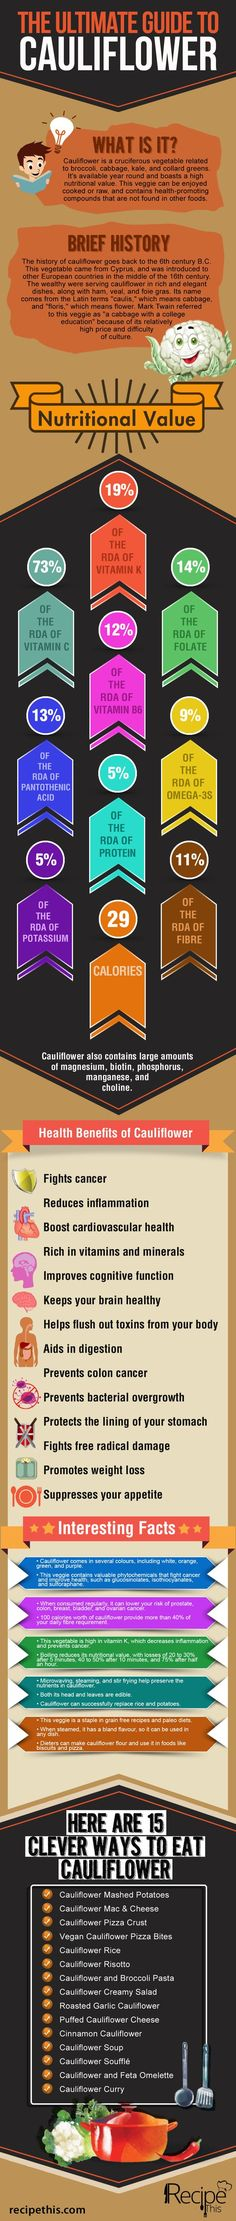 Cooking Tips Infographic | The utlimate guide to cauliflower